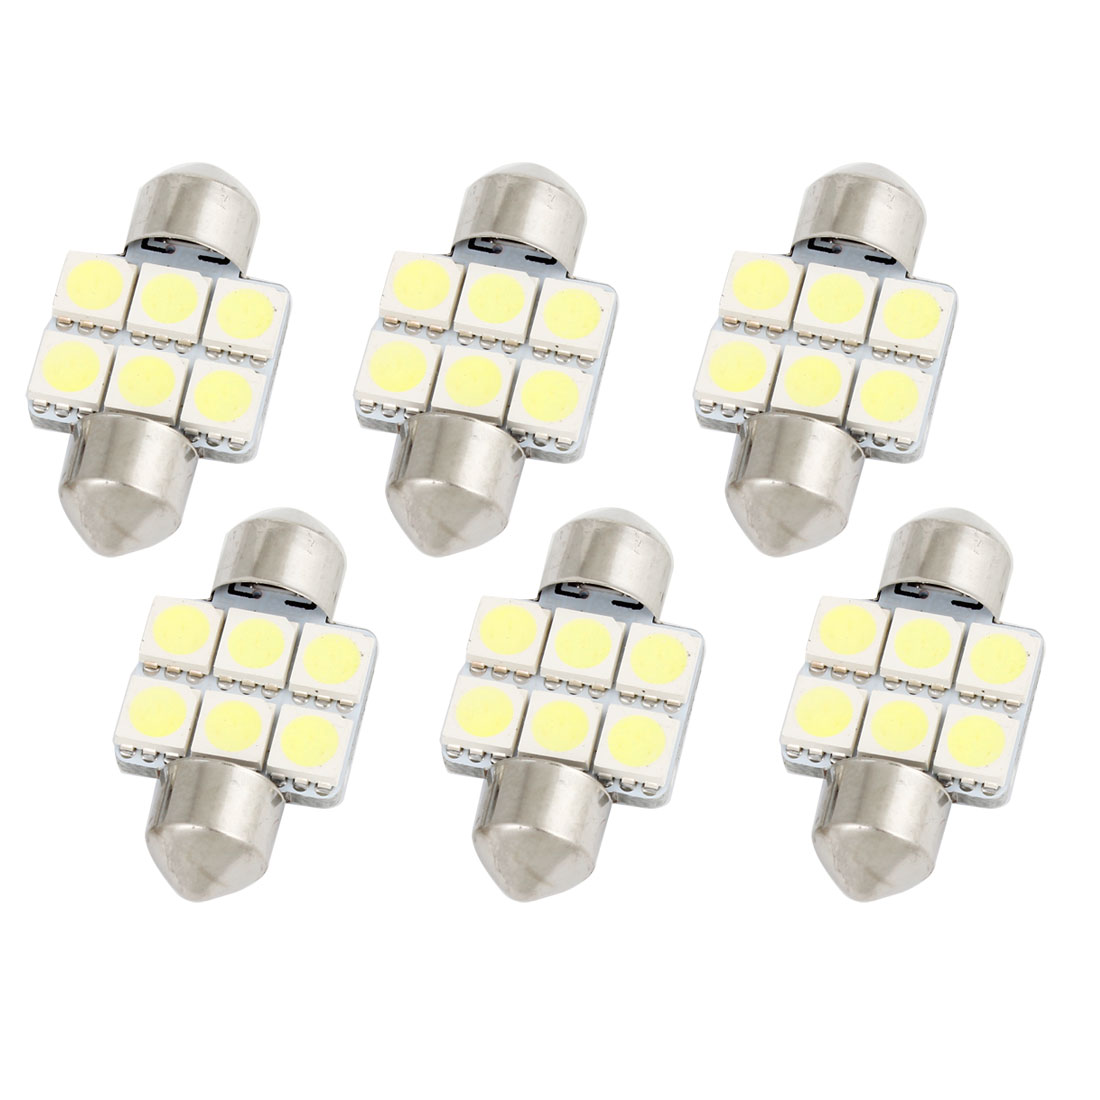 6Pcs 31mm 5050 SMD 6 LED White Festoon Dome Map Reading Light 3175 3022 3021 Internal